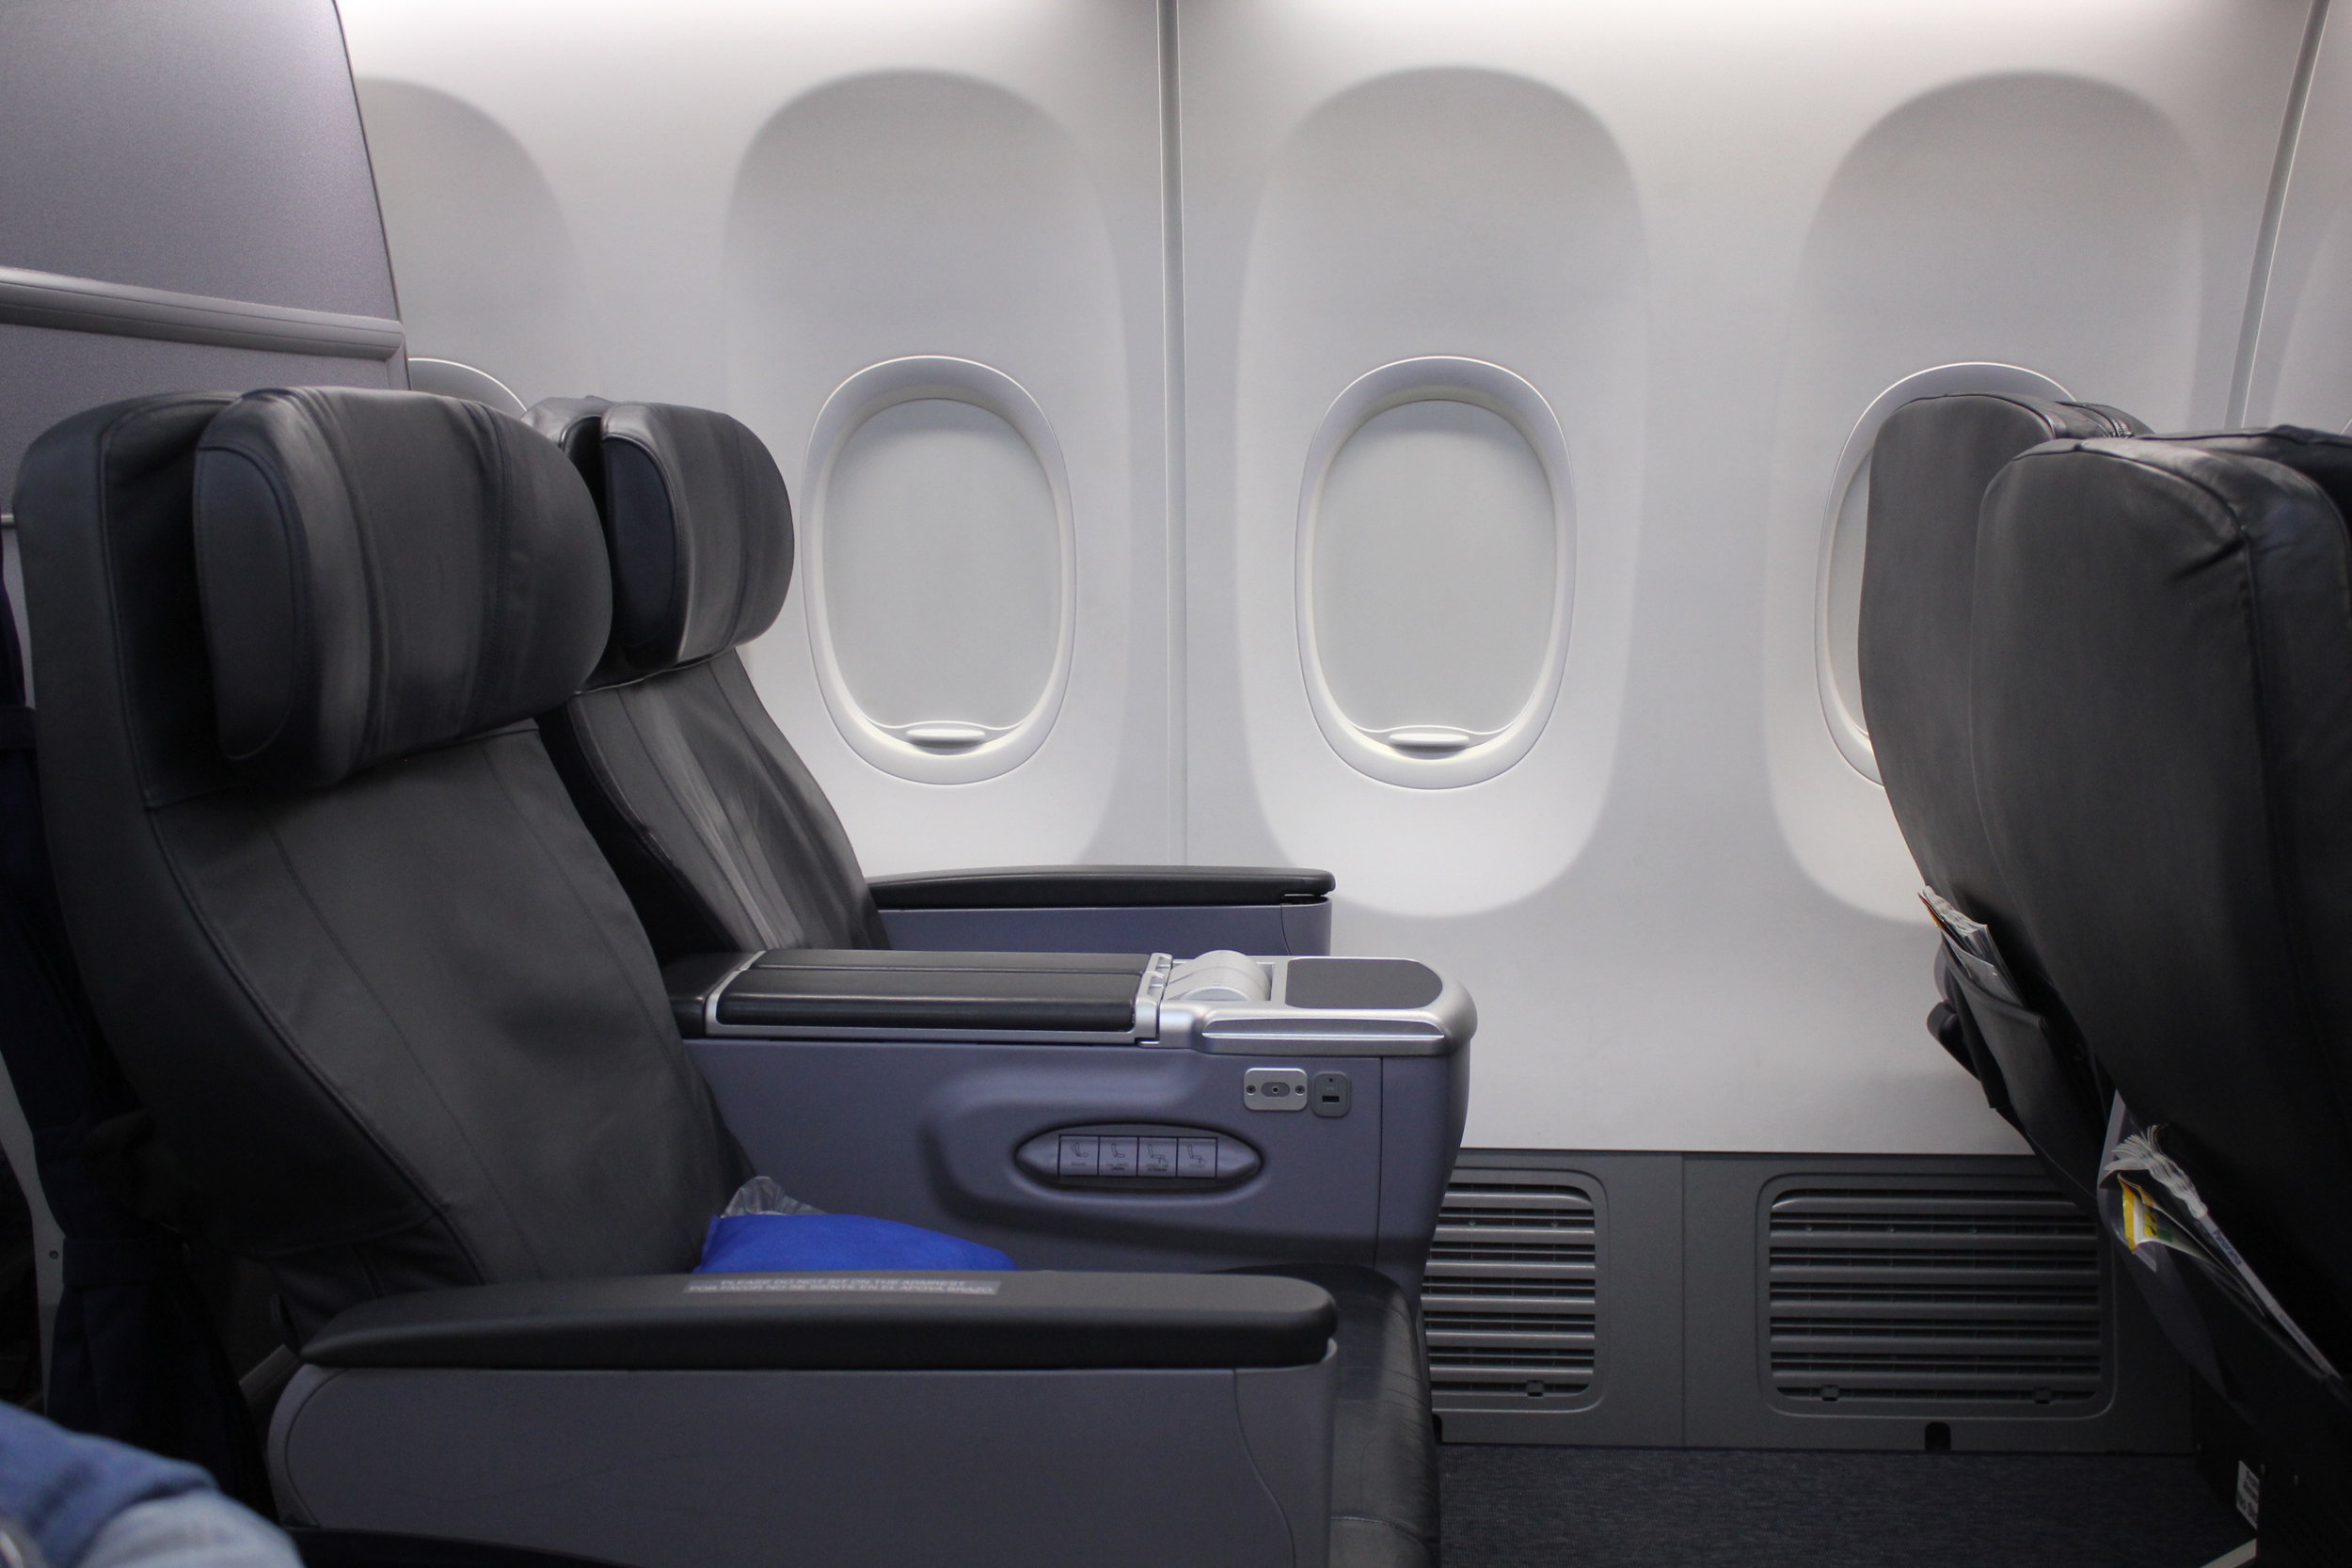 Copa Airlines business class – Seats 4A and 4B